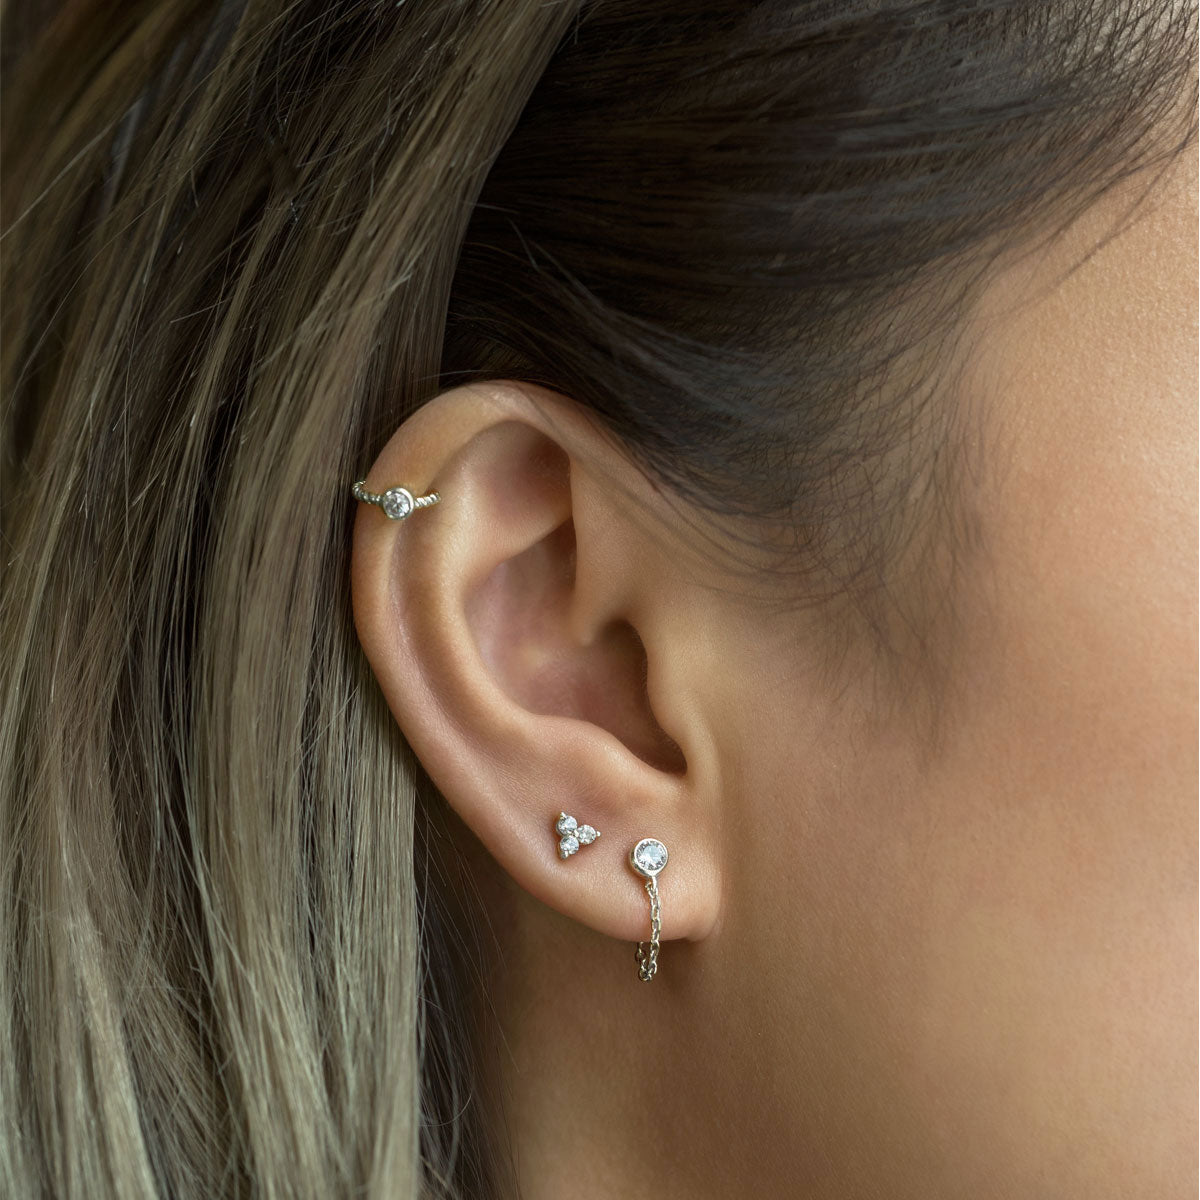 Crystal Cartilage Cuff Earring